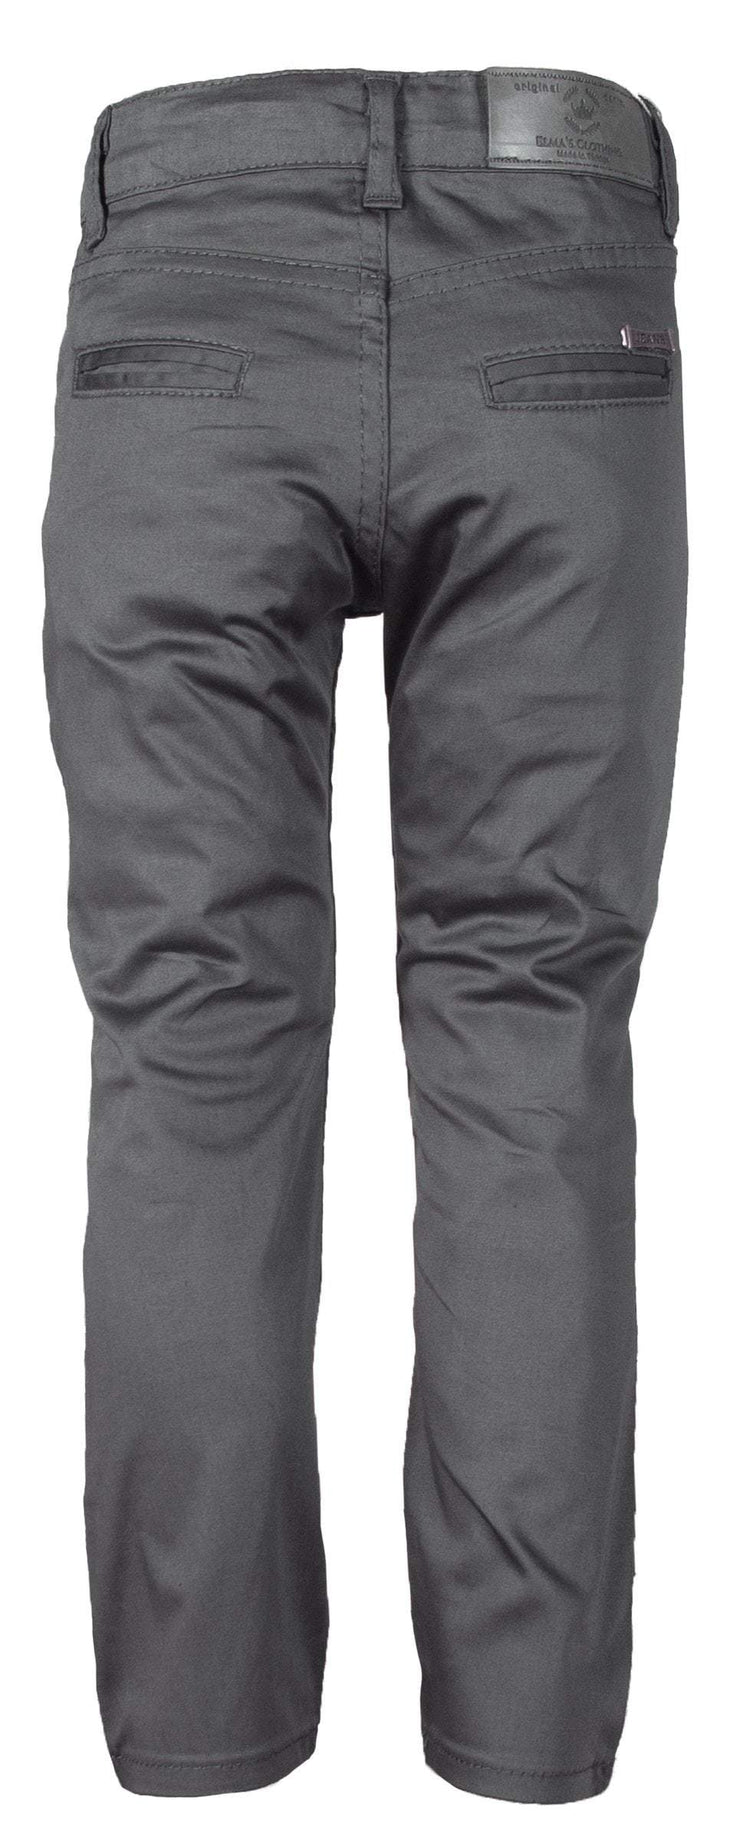 Boy's Pants Dark Gray